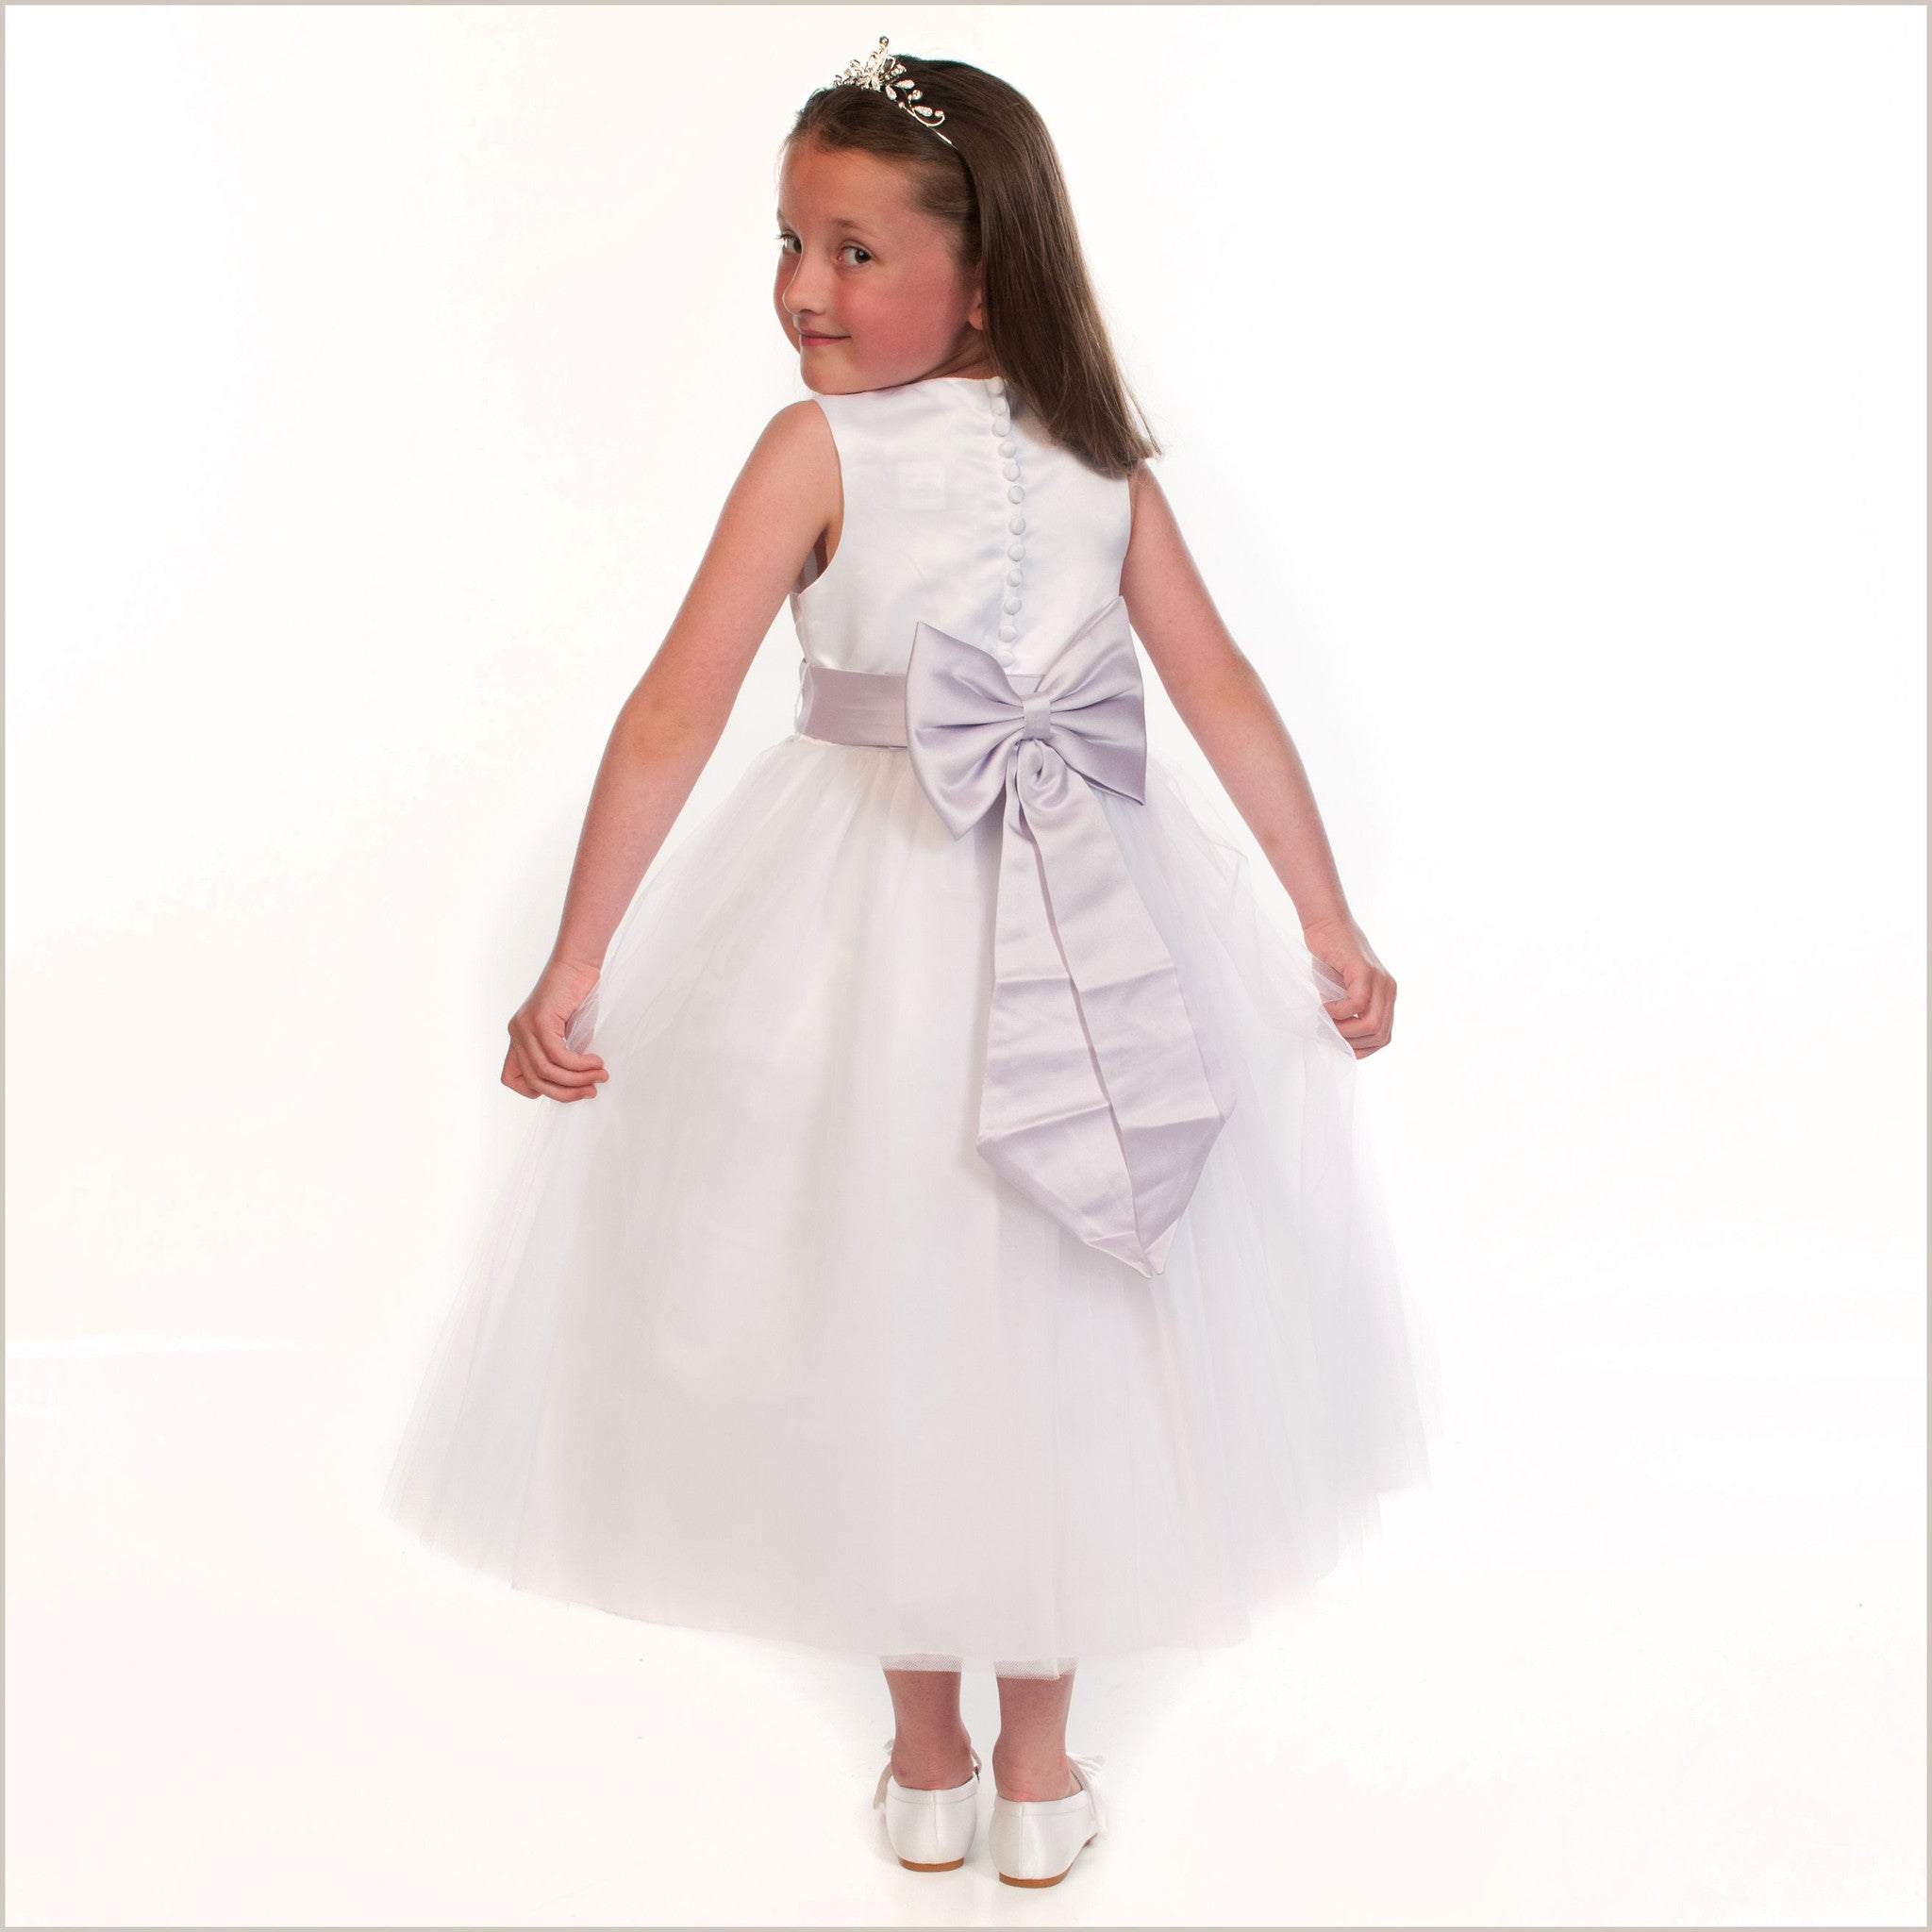 White flower girl dress white princess removable sash princess white flower girl dress izmirmasajfo